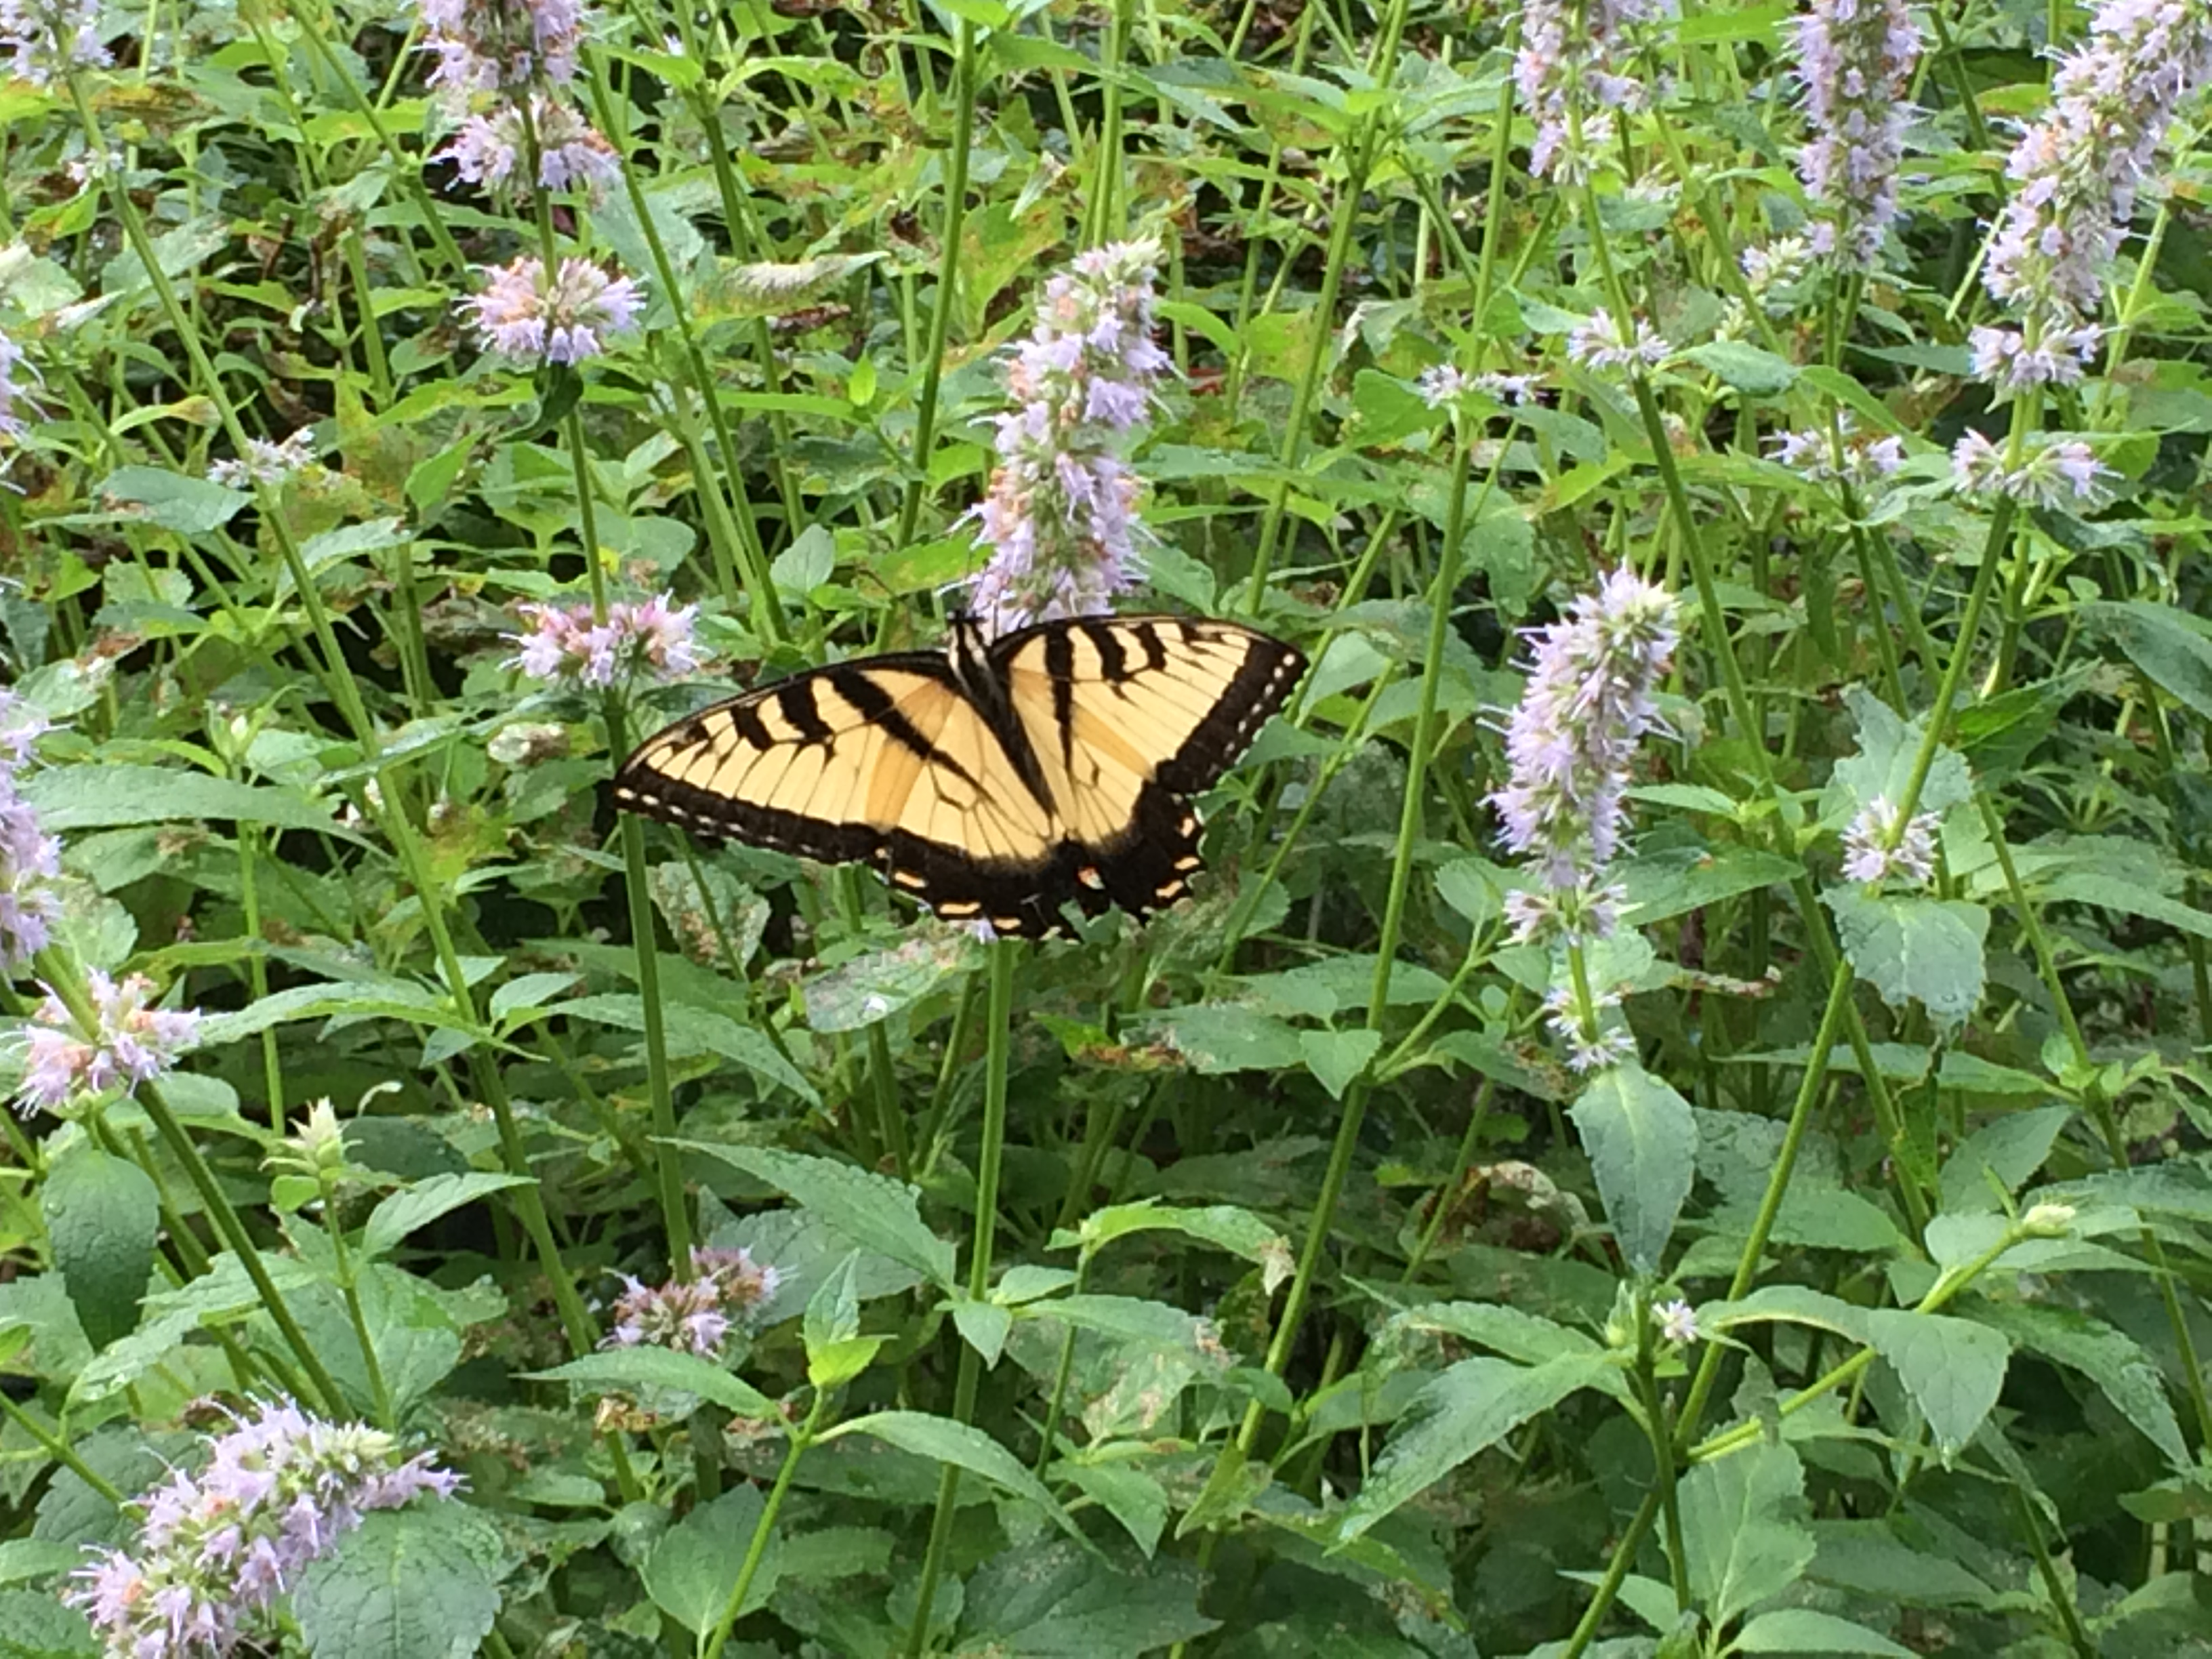 Some Of You May Have Enjoyed The Discussion And Tour Of The Churchu0027s Gardens,  Including The Butterfly Garden, Tended By Our U201cGardeners Of Edenu201d On July  10.